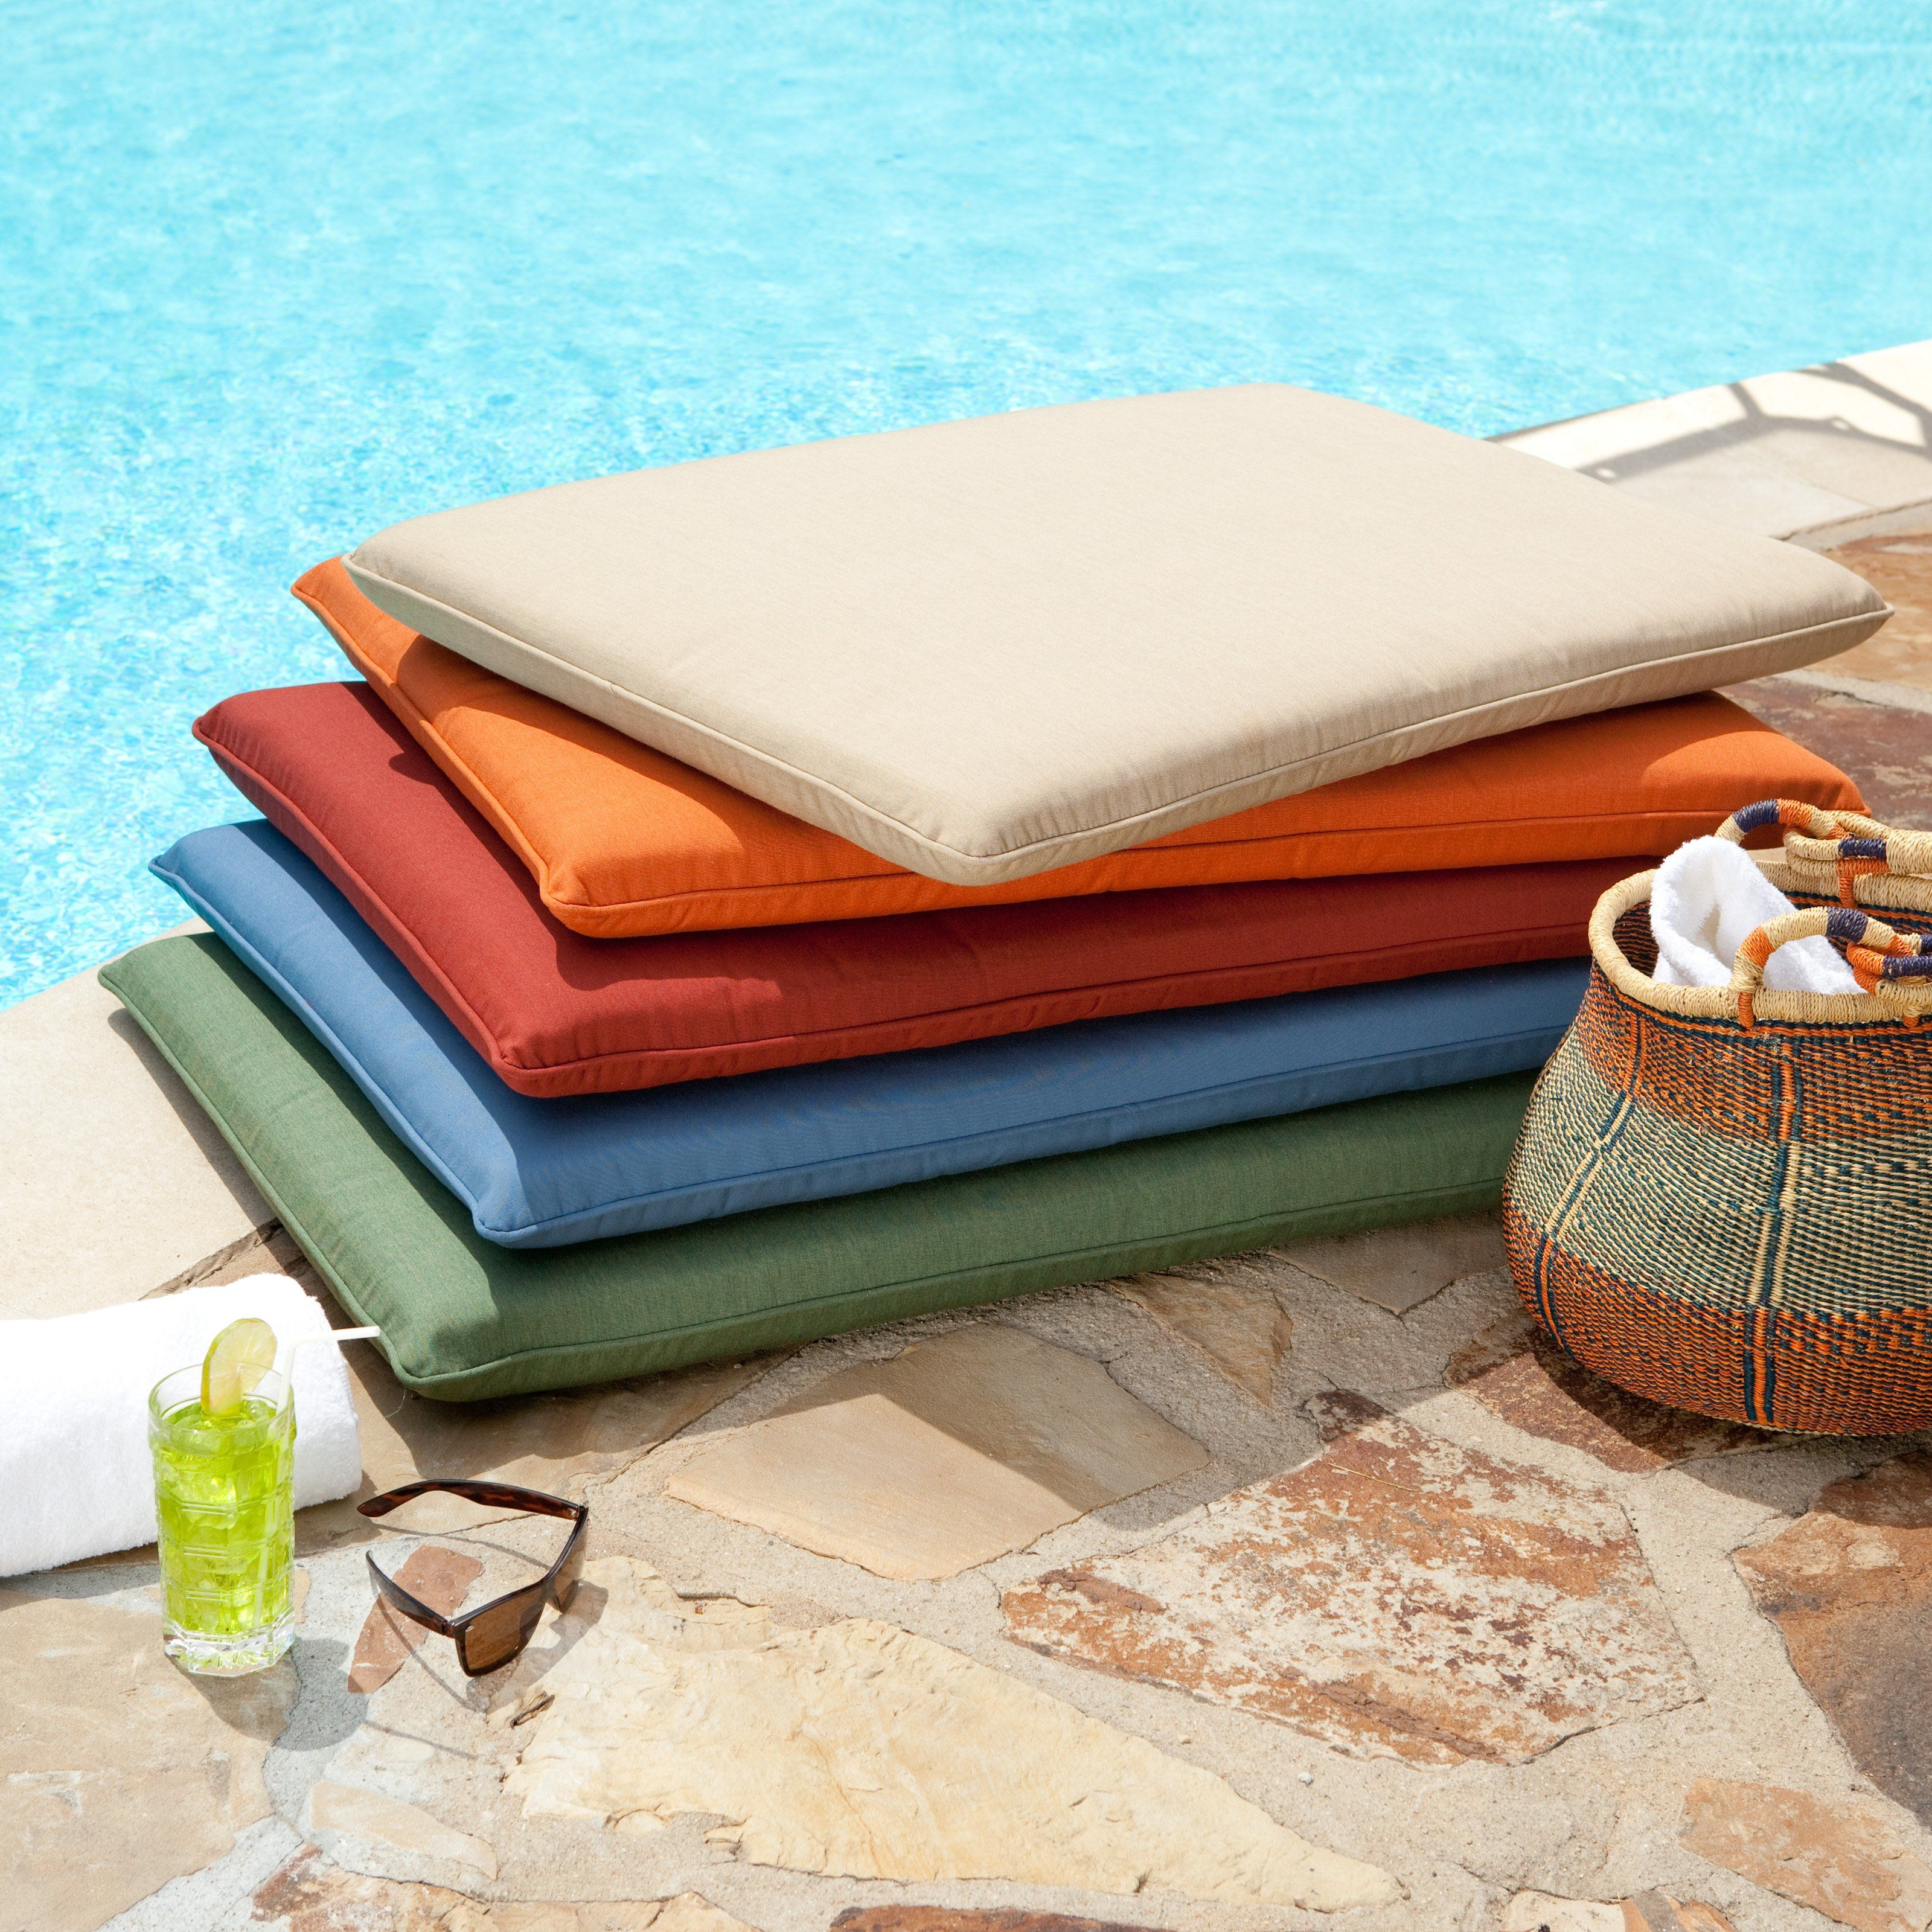 Frontgate Lounge Chair Cushions Covers For Folding Chairs Wedding Have To It Sunbrella 36 X 24 Outdoor Pool Cushion